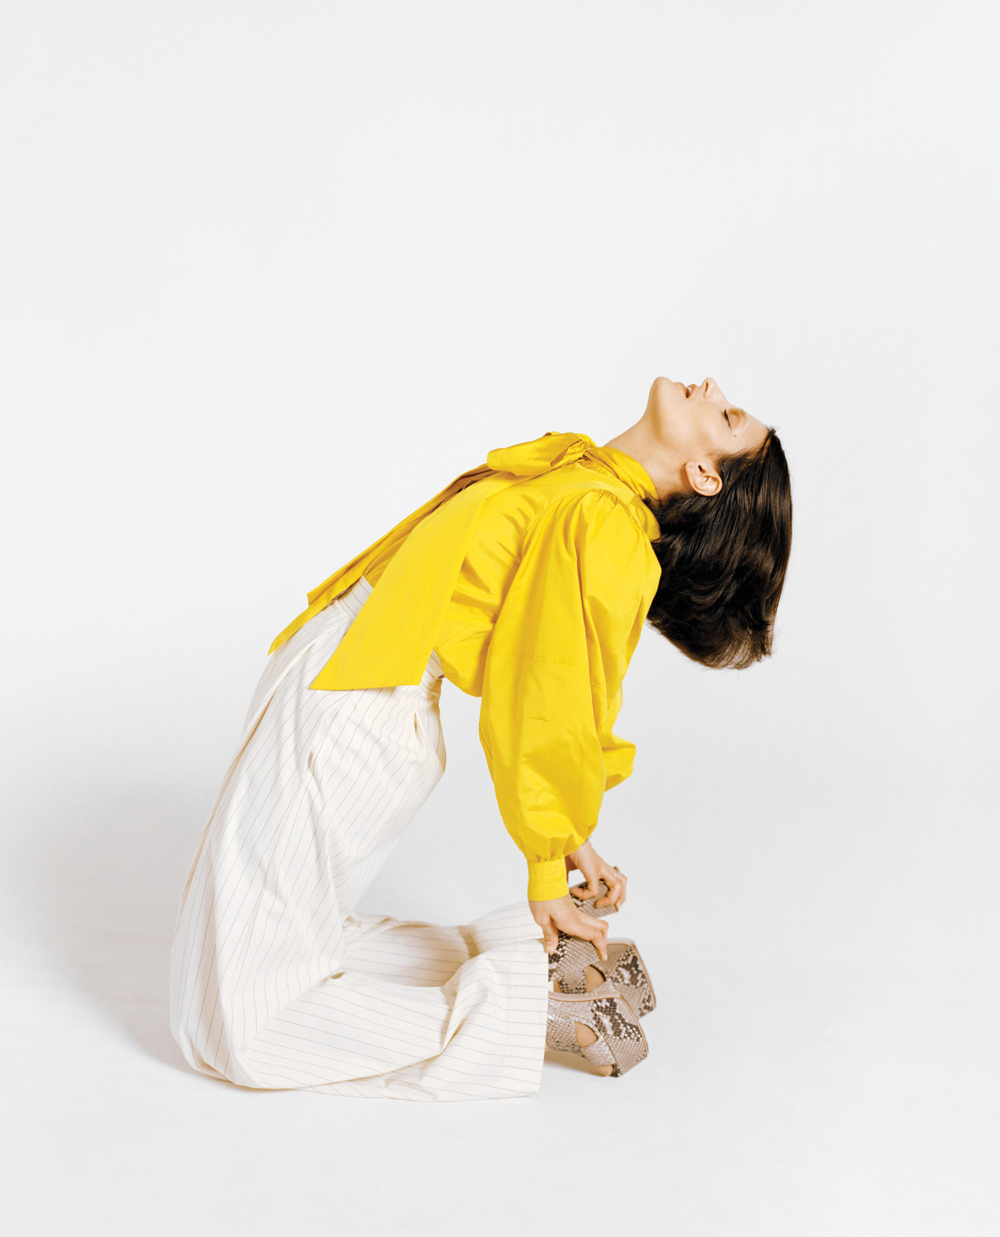 Mattiel Brown in a yellow Tory Burch shirt that has a flowing bow tie on the front